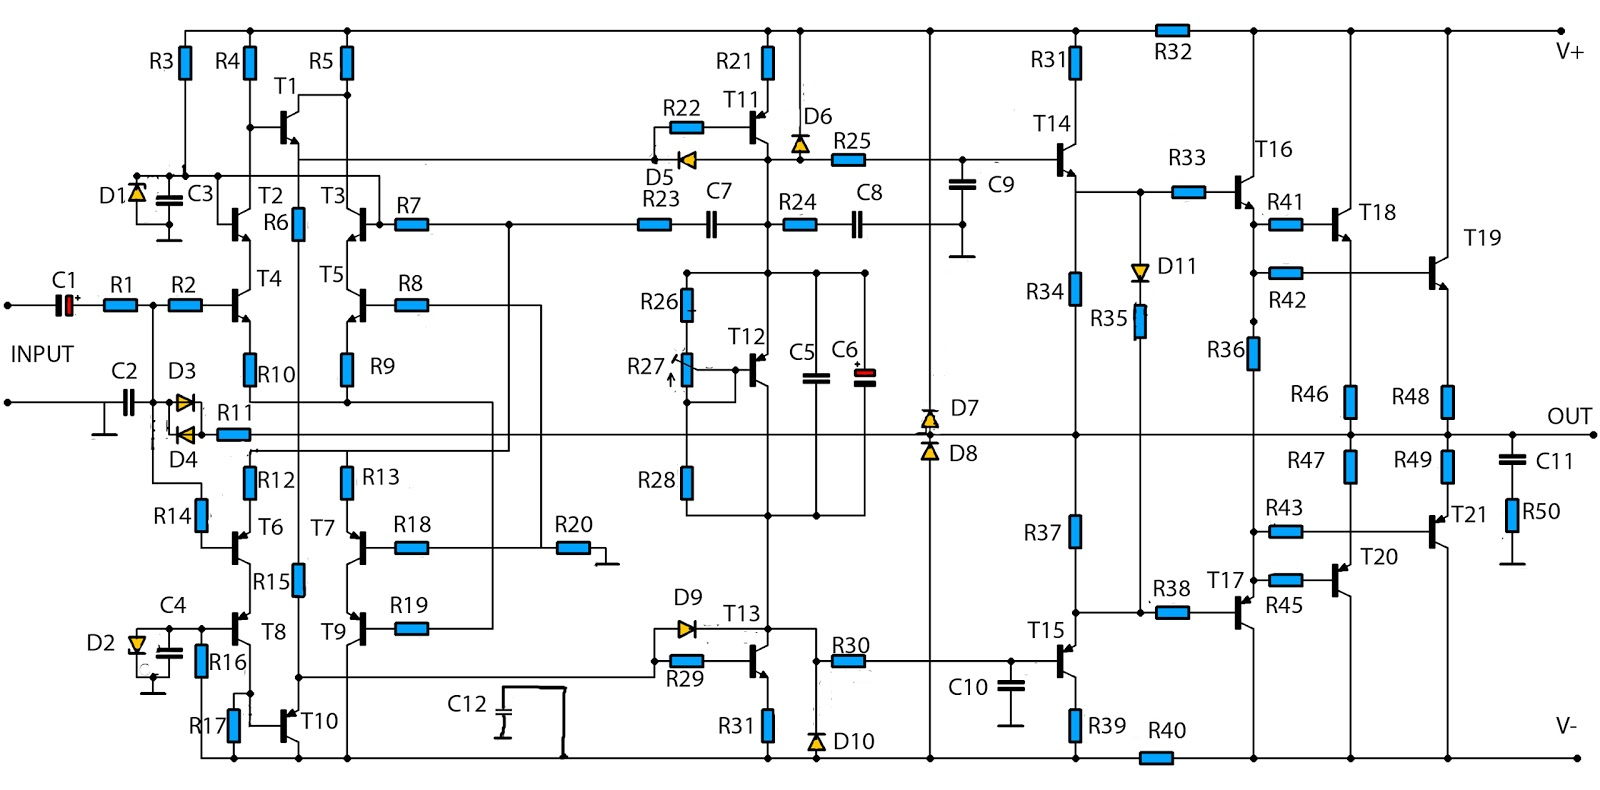 Pioneer Power Amplifier Schematic Diagram Wiring Diagrams For Car Audio Circuit Received By Email Lm2896 2800w High Updated Electronic Amplifiers